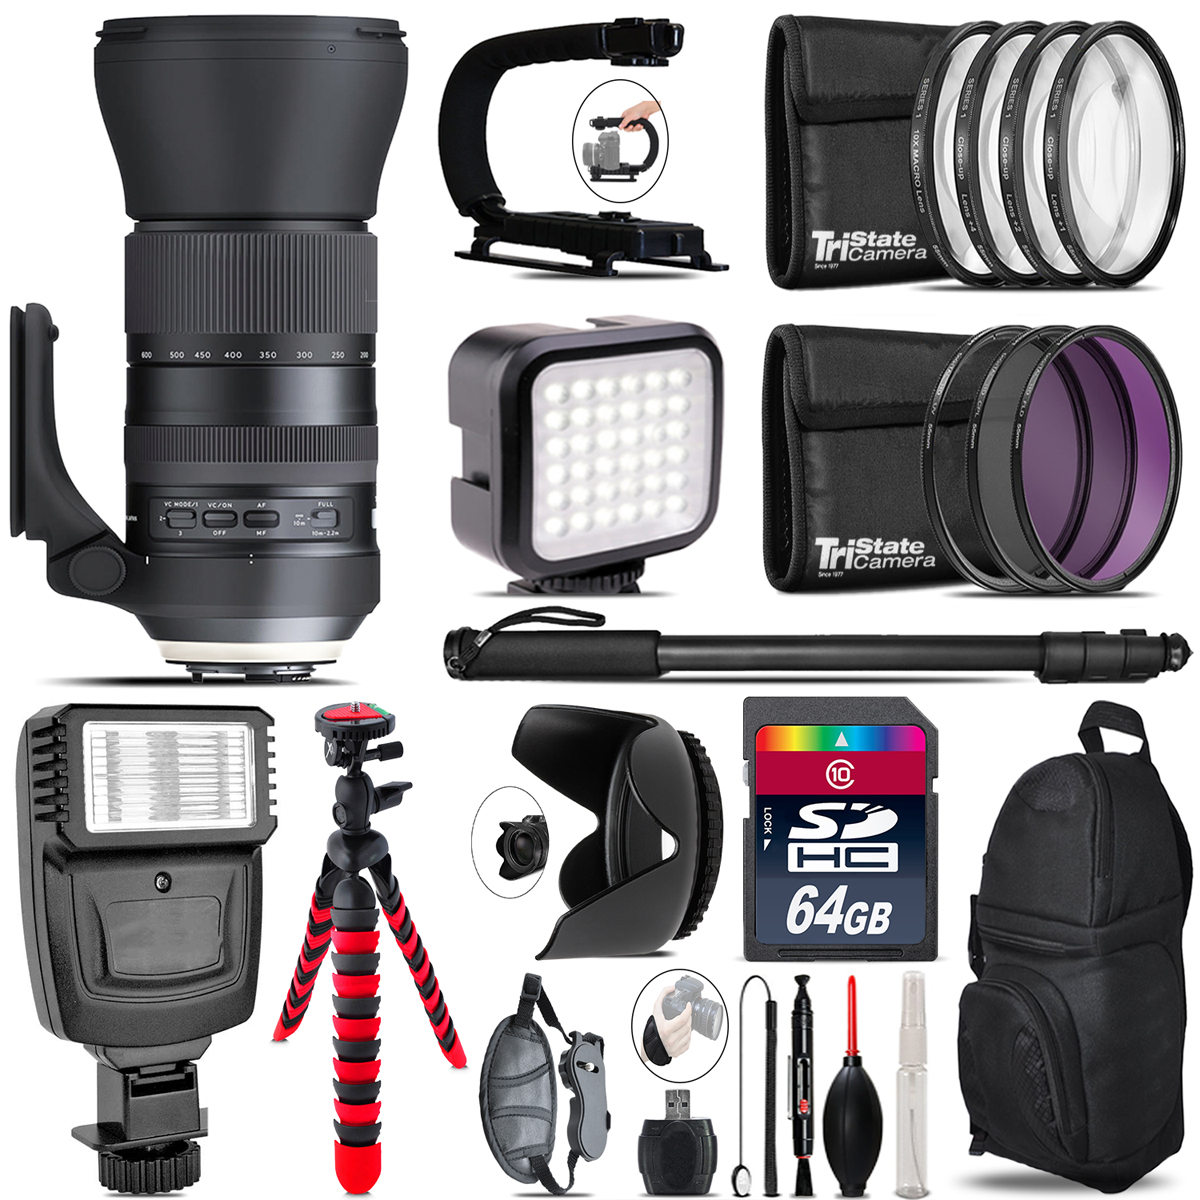 Tamron 150-600mm G2 for Canon - Video Kit + Flash - 64GB Accessory Bundle *FREE SHIPPING*